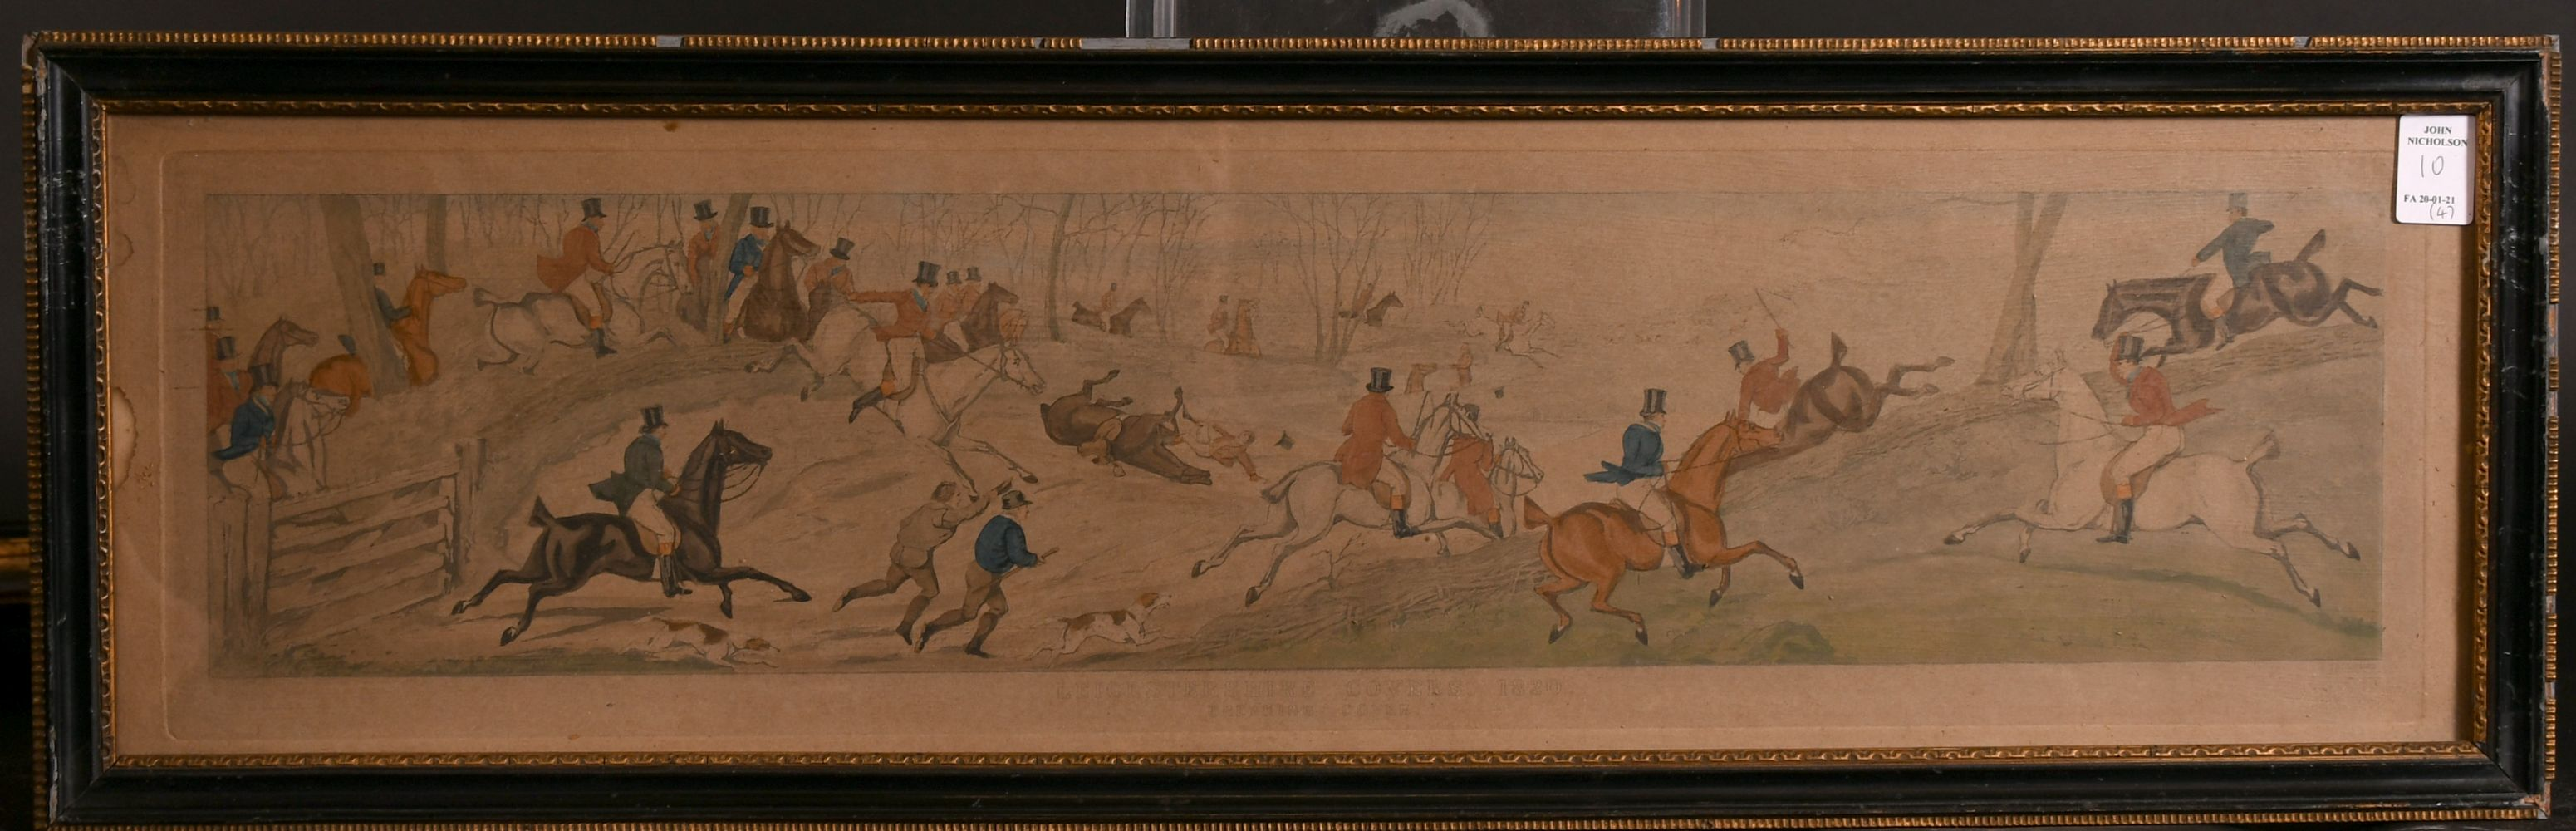 """After H. Alken, 'Leicestershire covers 1820' a set of four hunting prints, each 5"""" x 23.5"""". - Image 4 of 5"""